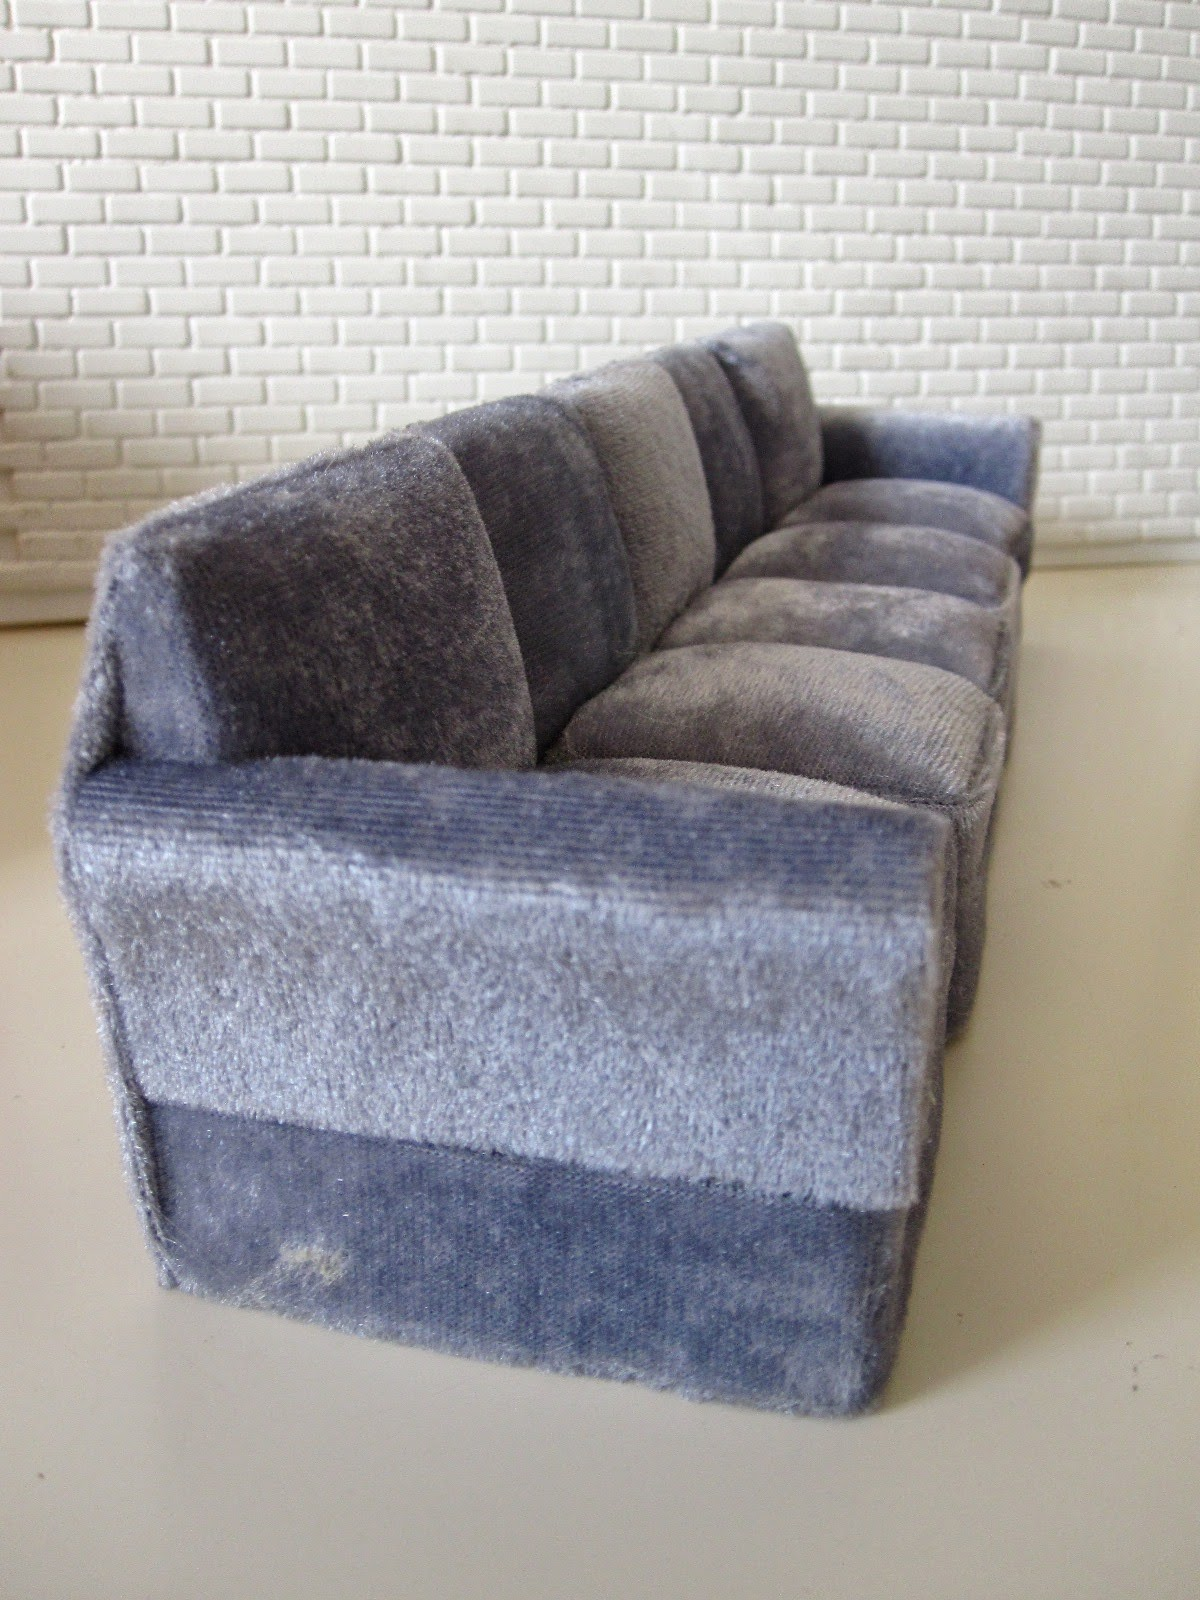 Modern miniature five seater grey velvet sofa.